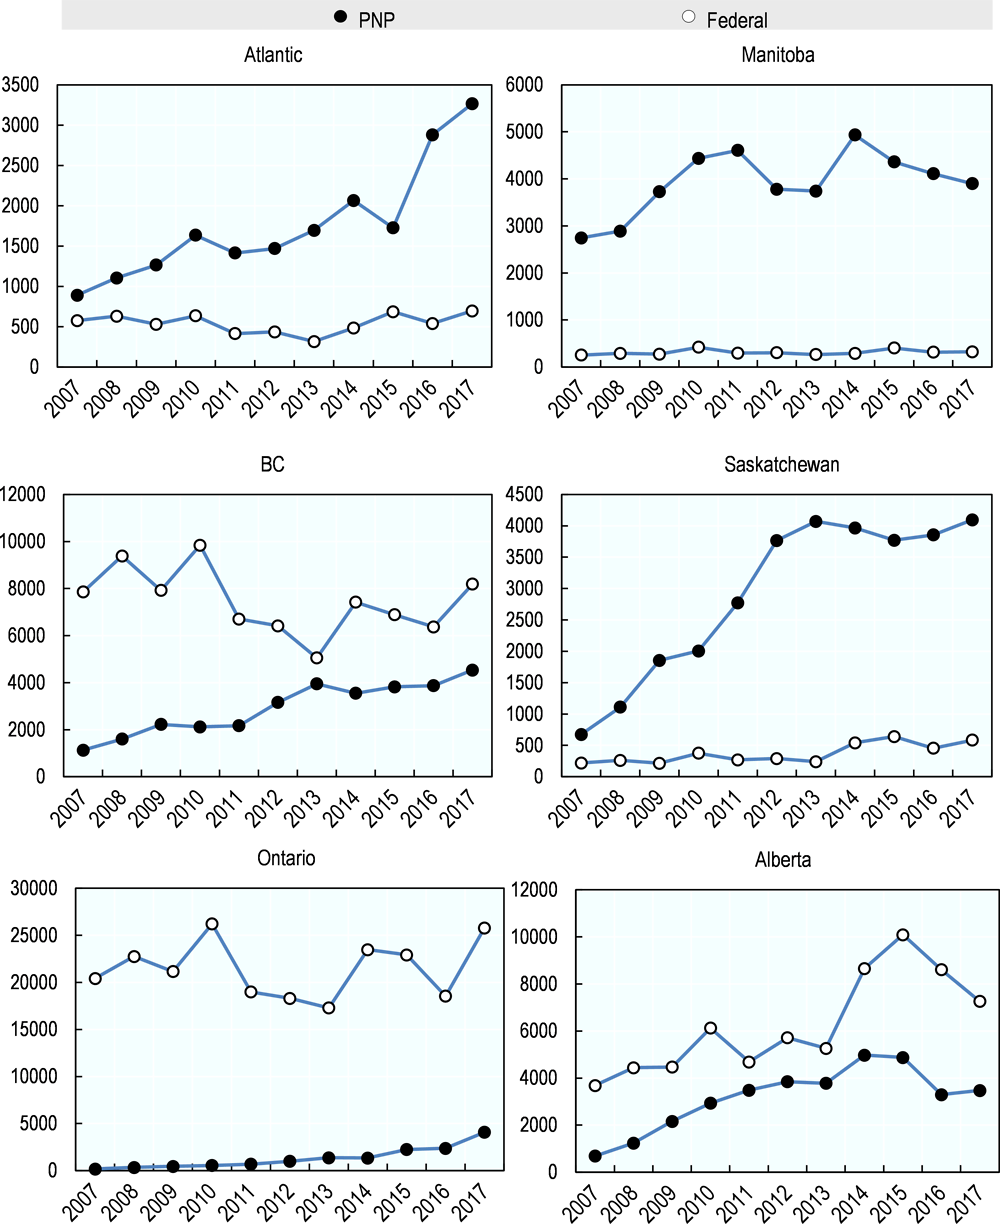 Figure 4.2. Evolution of federally and provincially selected labour immigrants by province, 2007-17